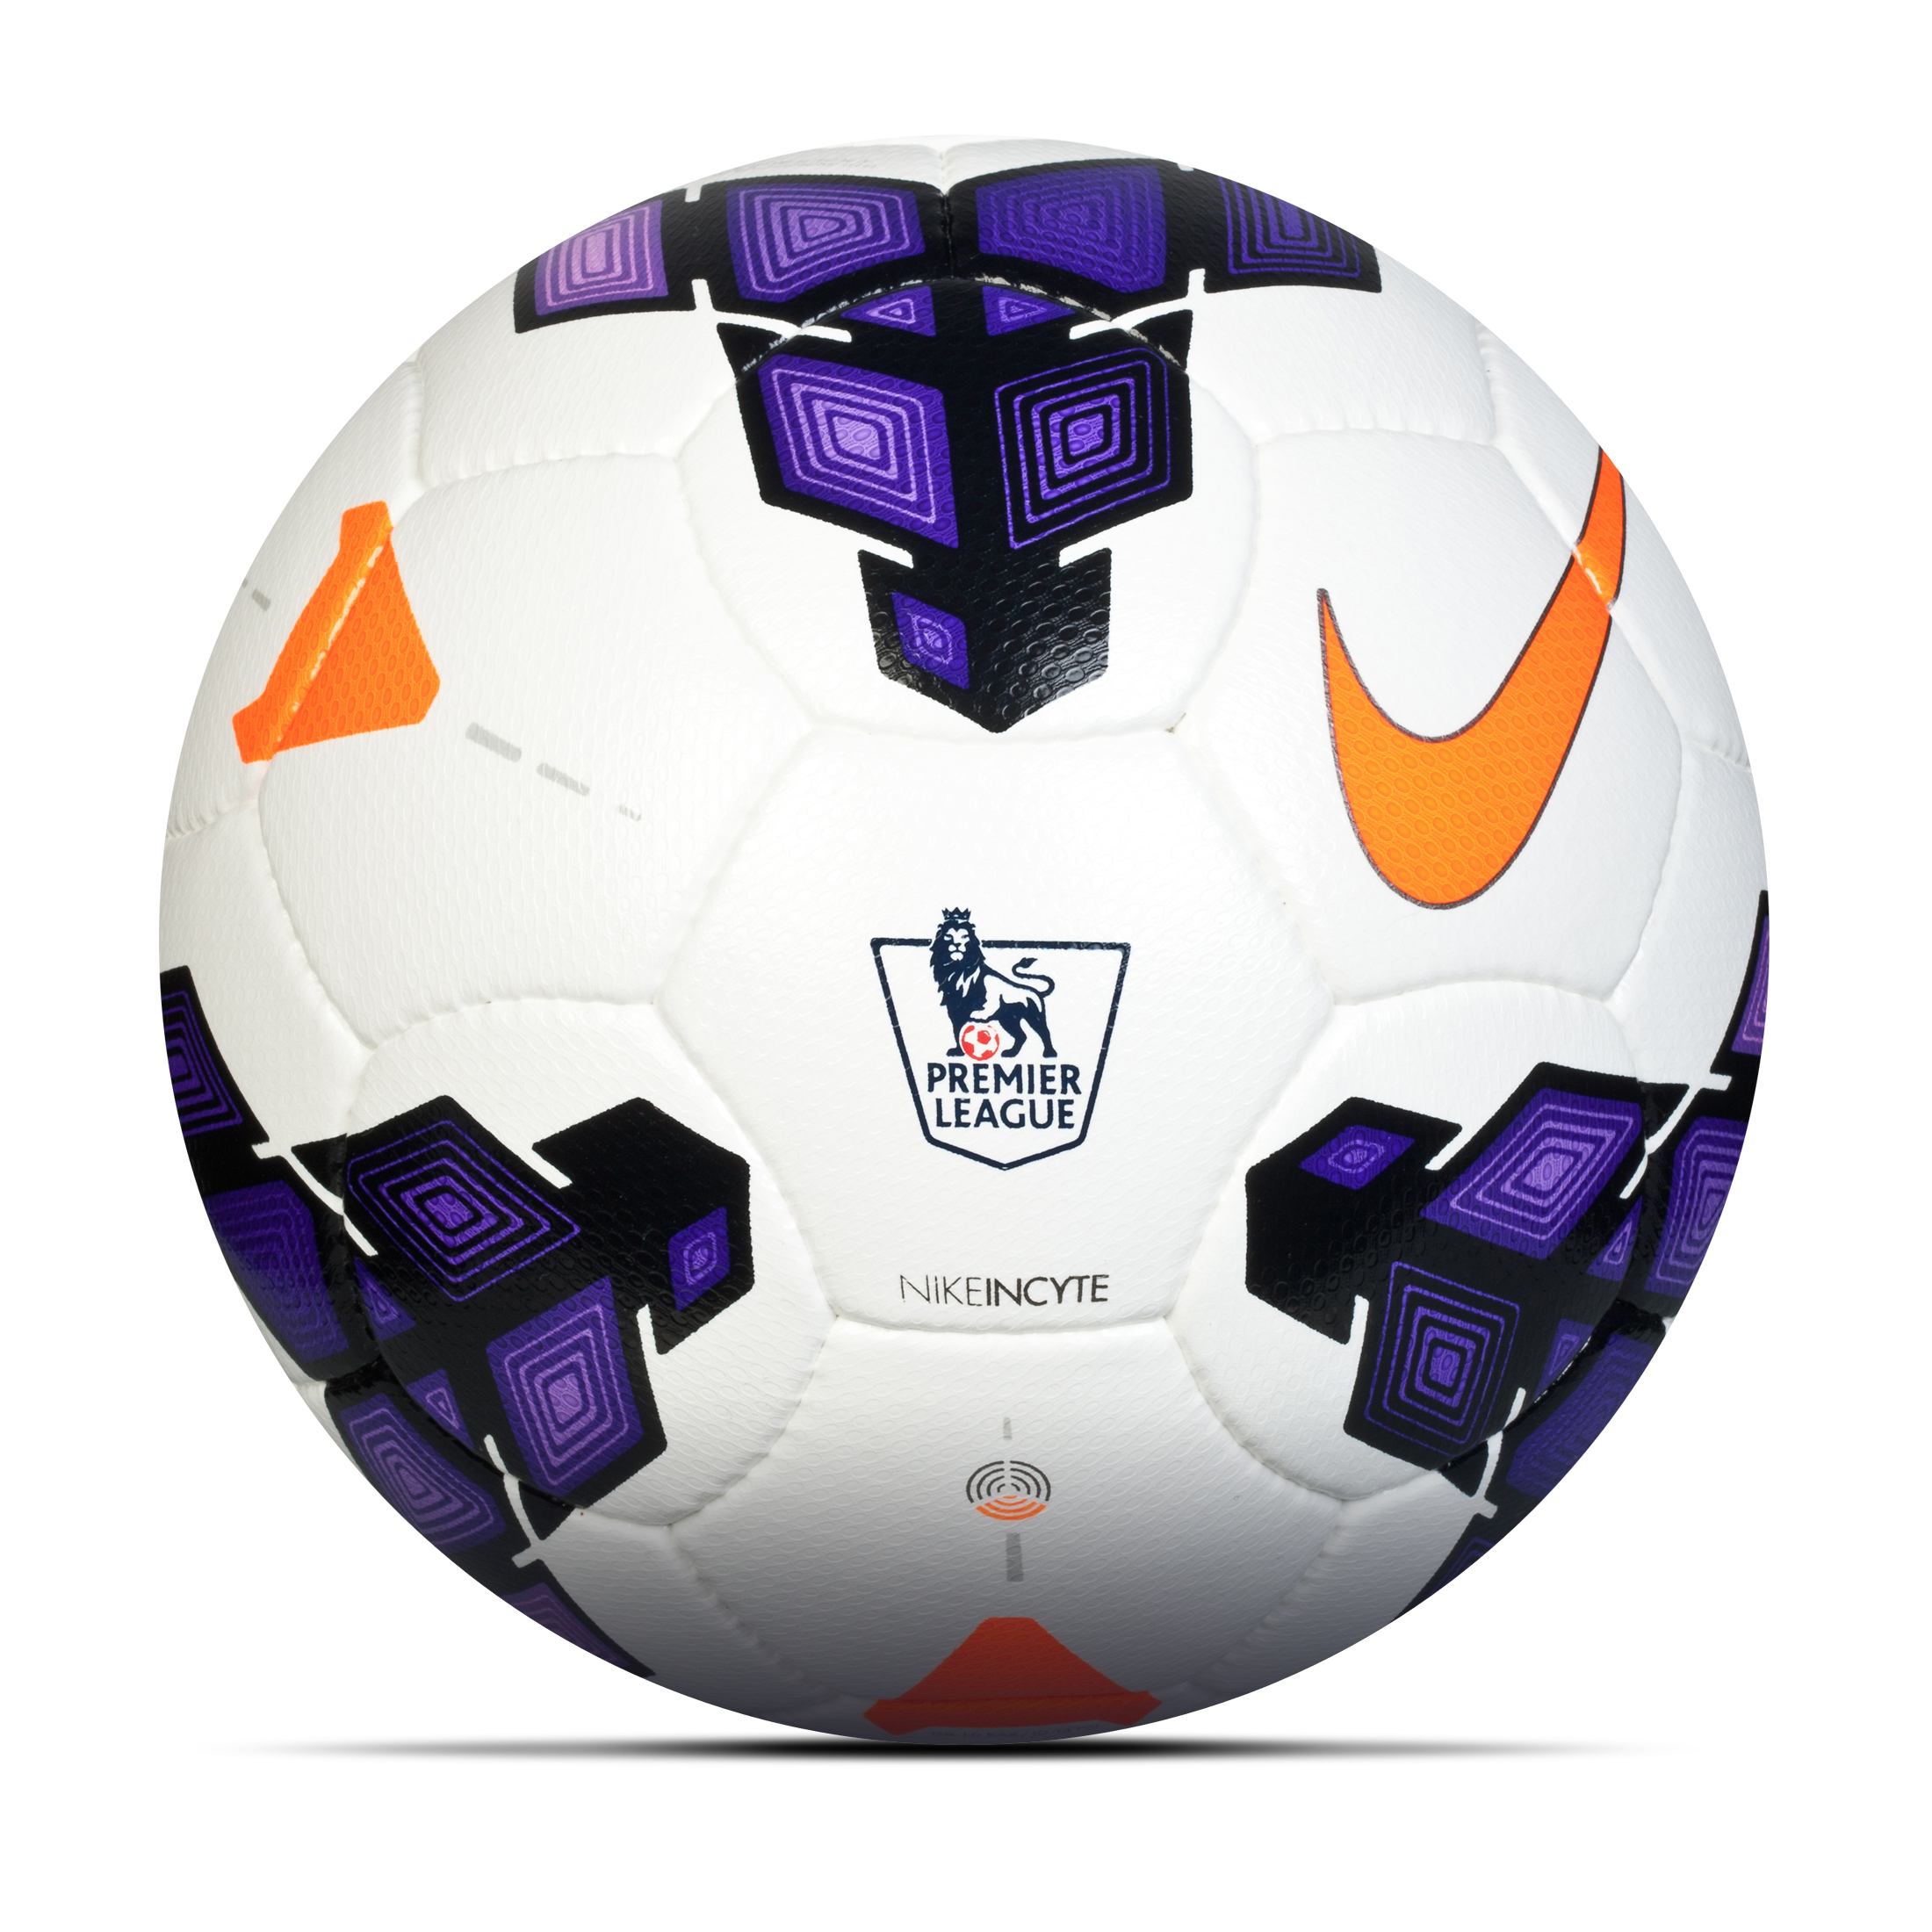 Nike Incyte Premier League Official Match Football White